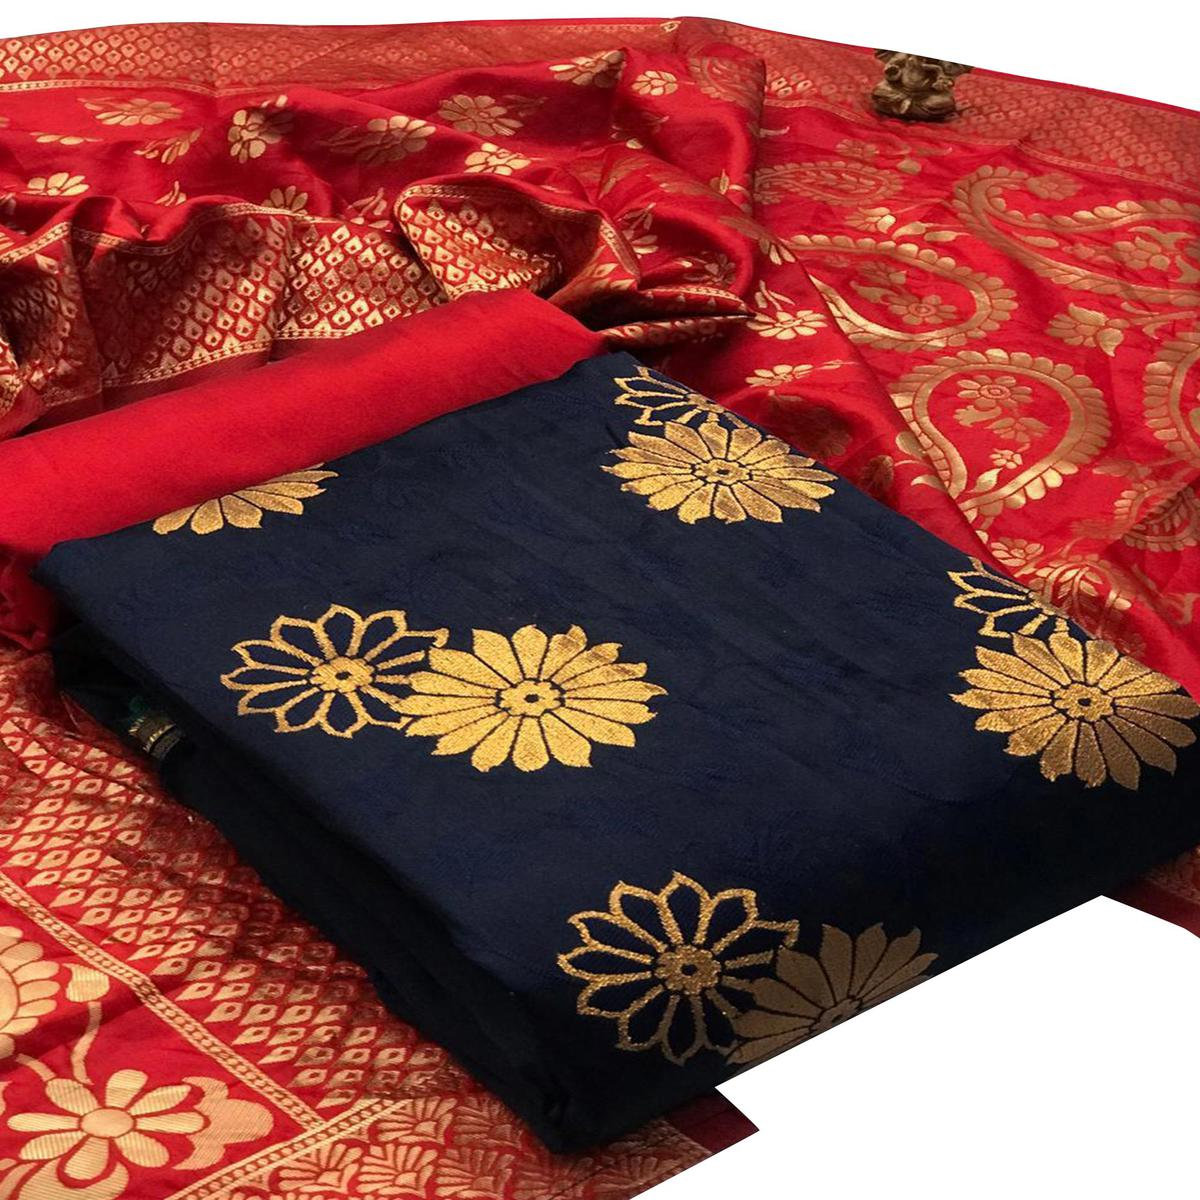 IRIS - Navy Blue Colored Festive Wear Banarasi Jacquard Dress Material